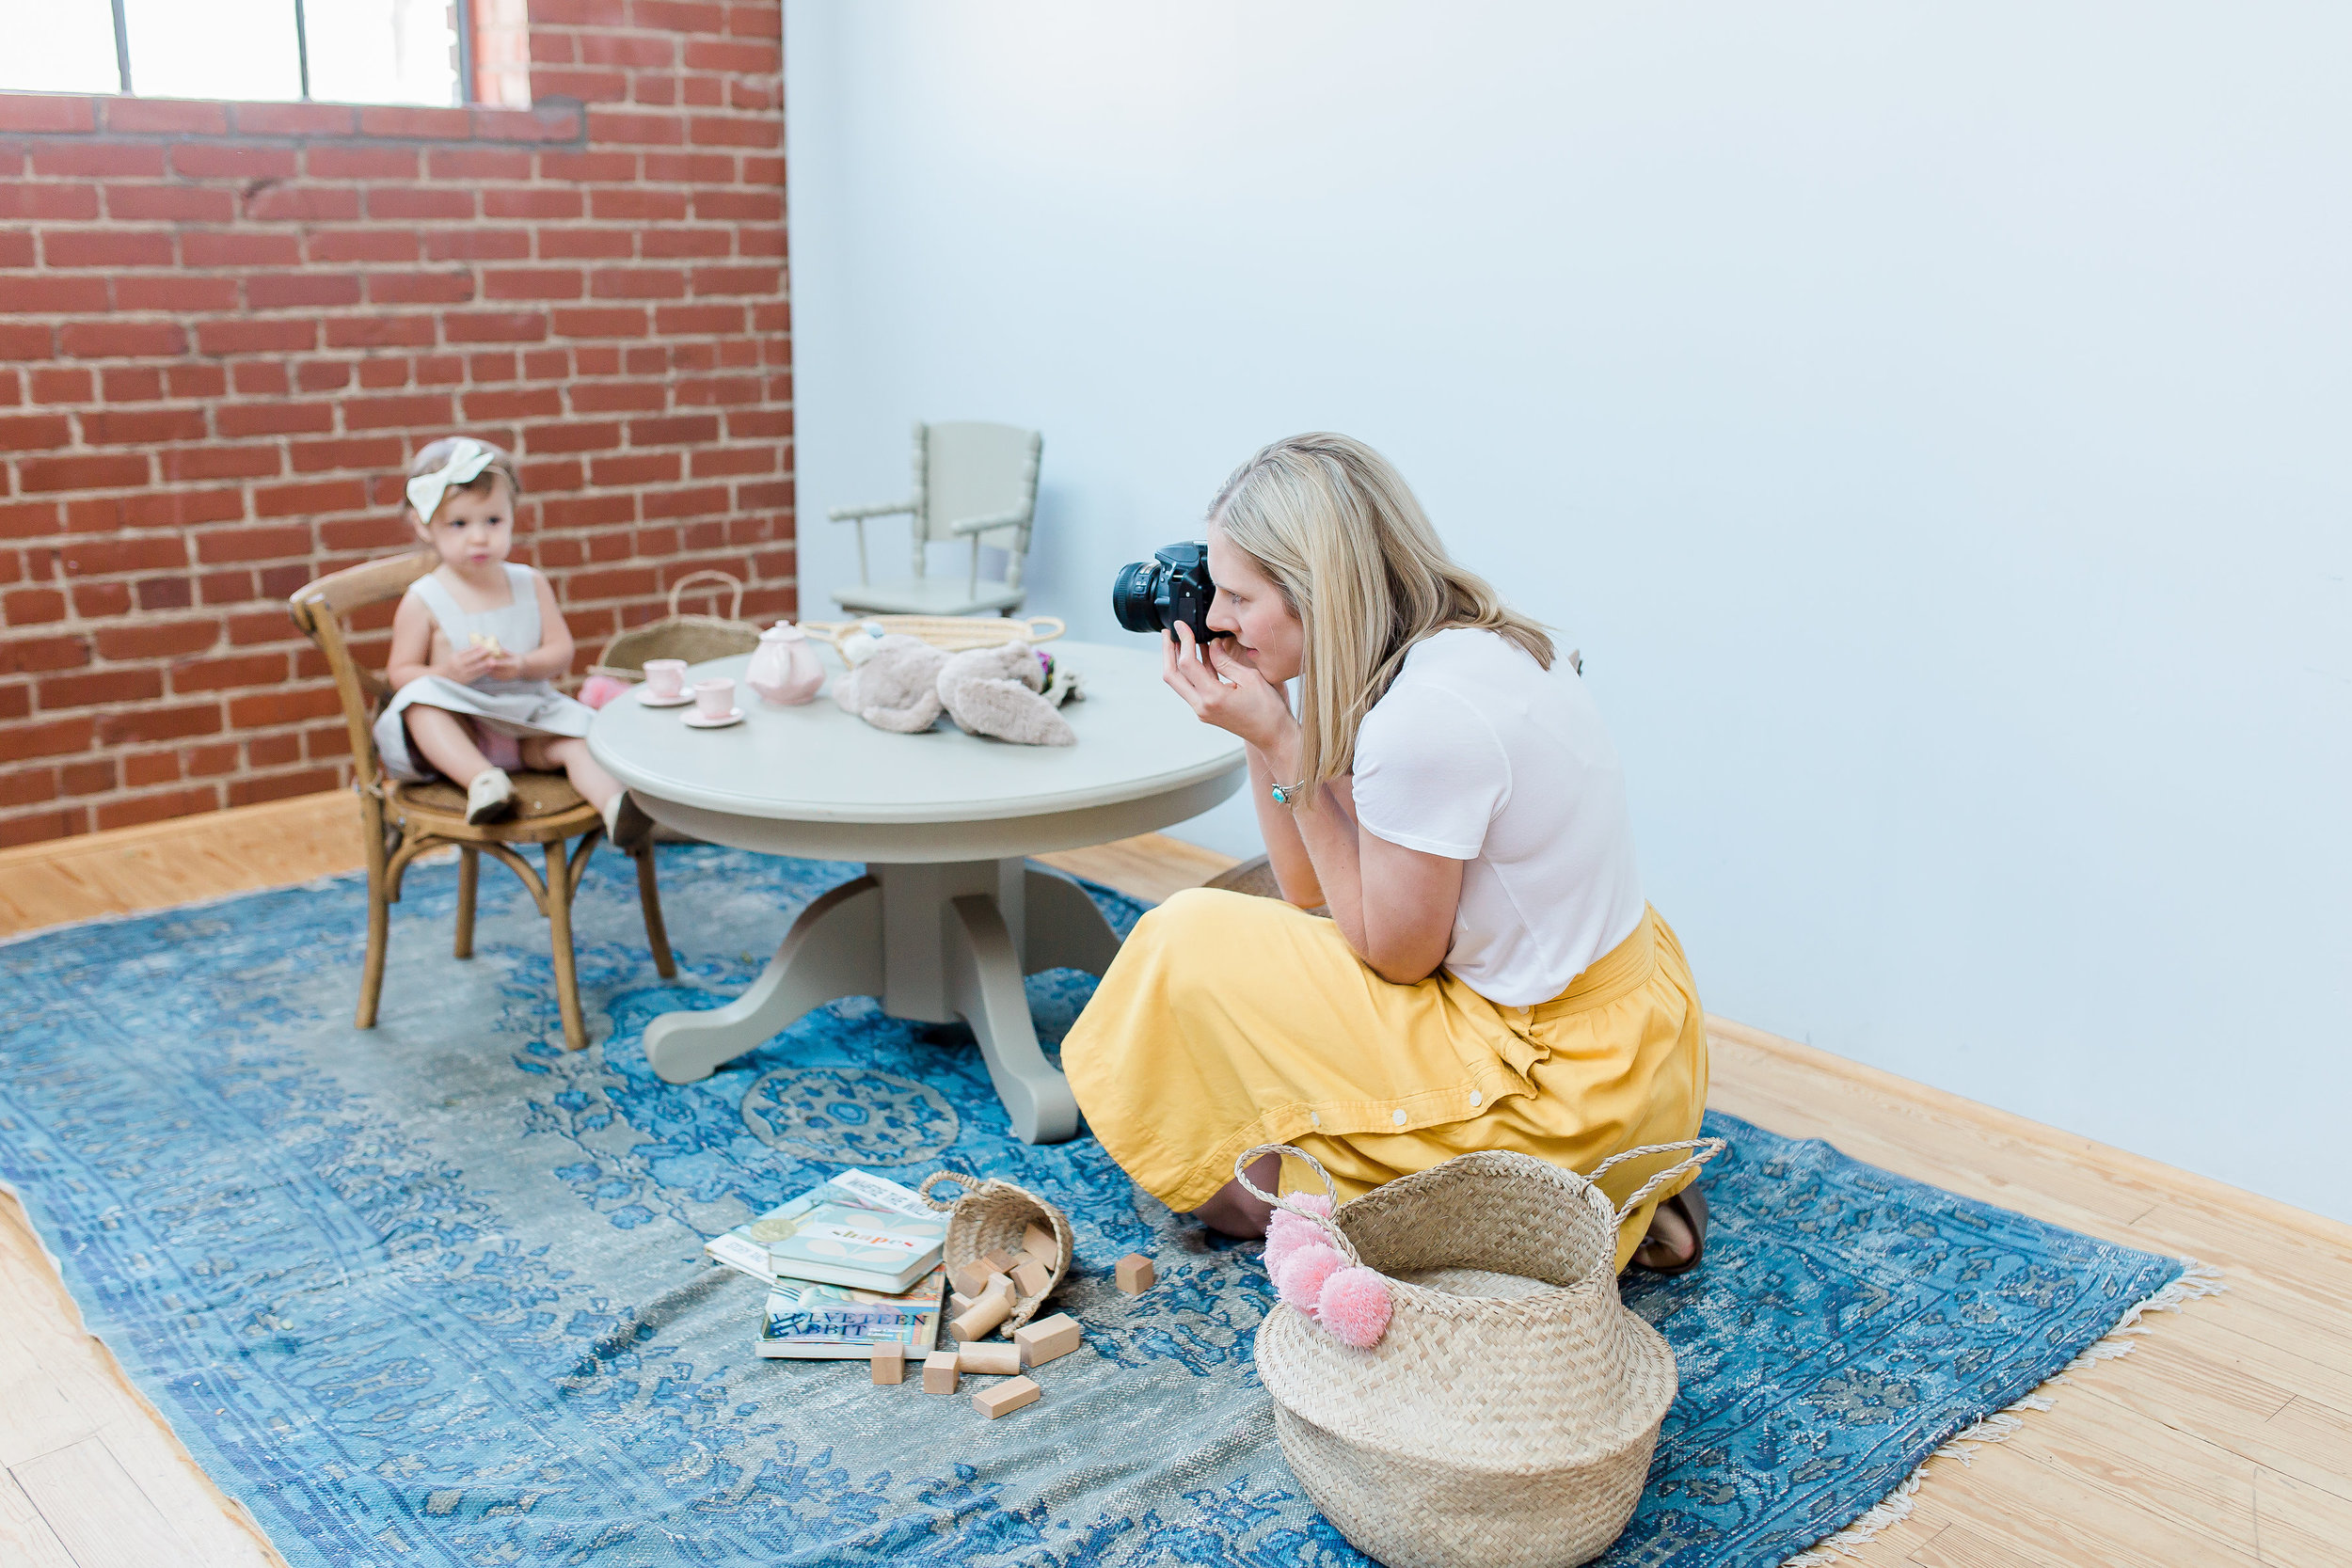 """""""  K  indred Photography Workshop  was better than I could've ever expected! The natural light was wonderful and everything was so comfortable and inviting."""" -Kindred OKC Attendee"""